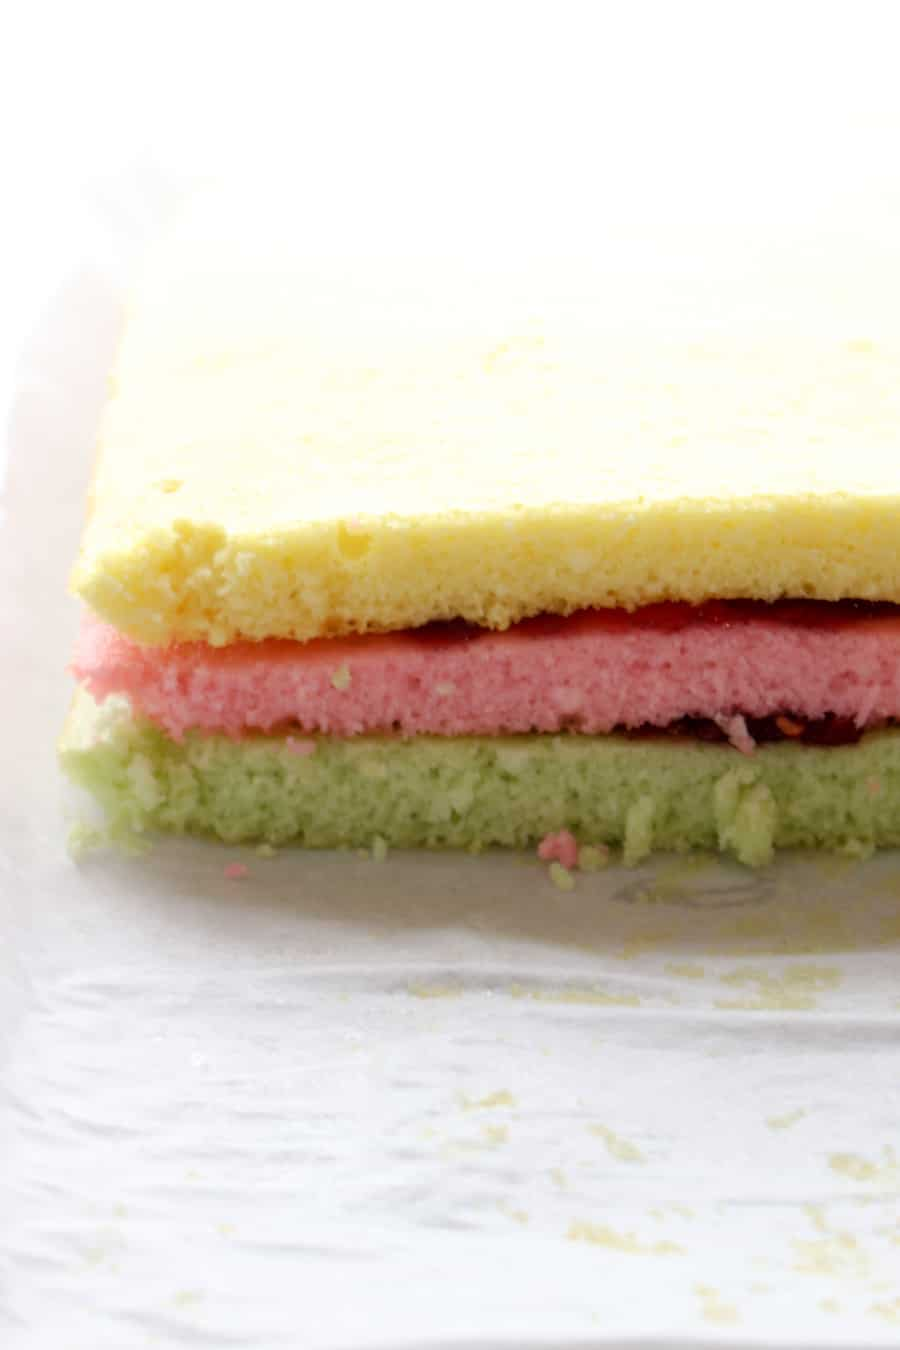 Colored cakes stacked